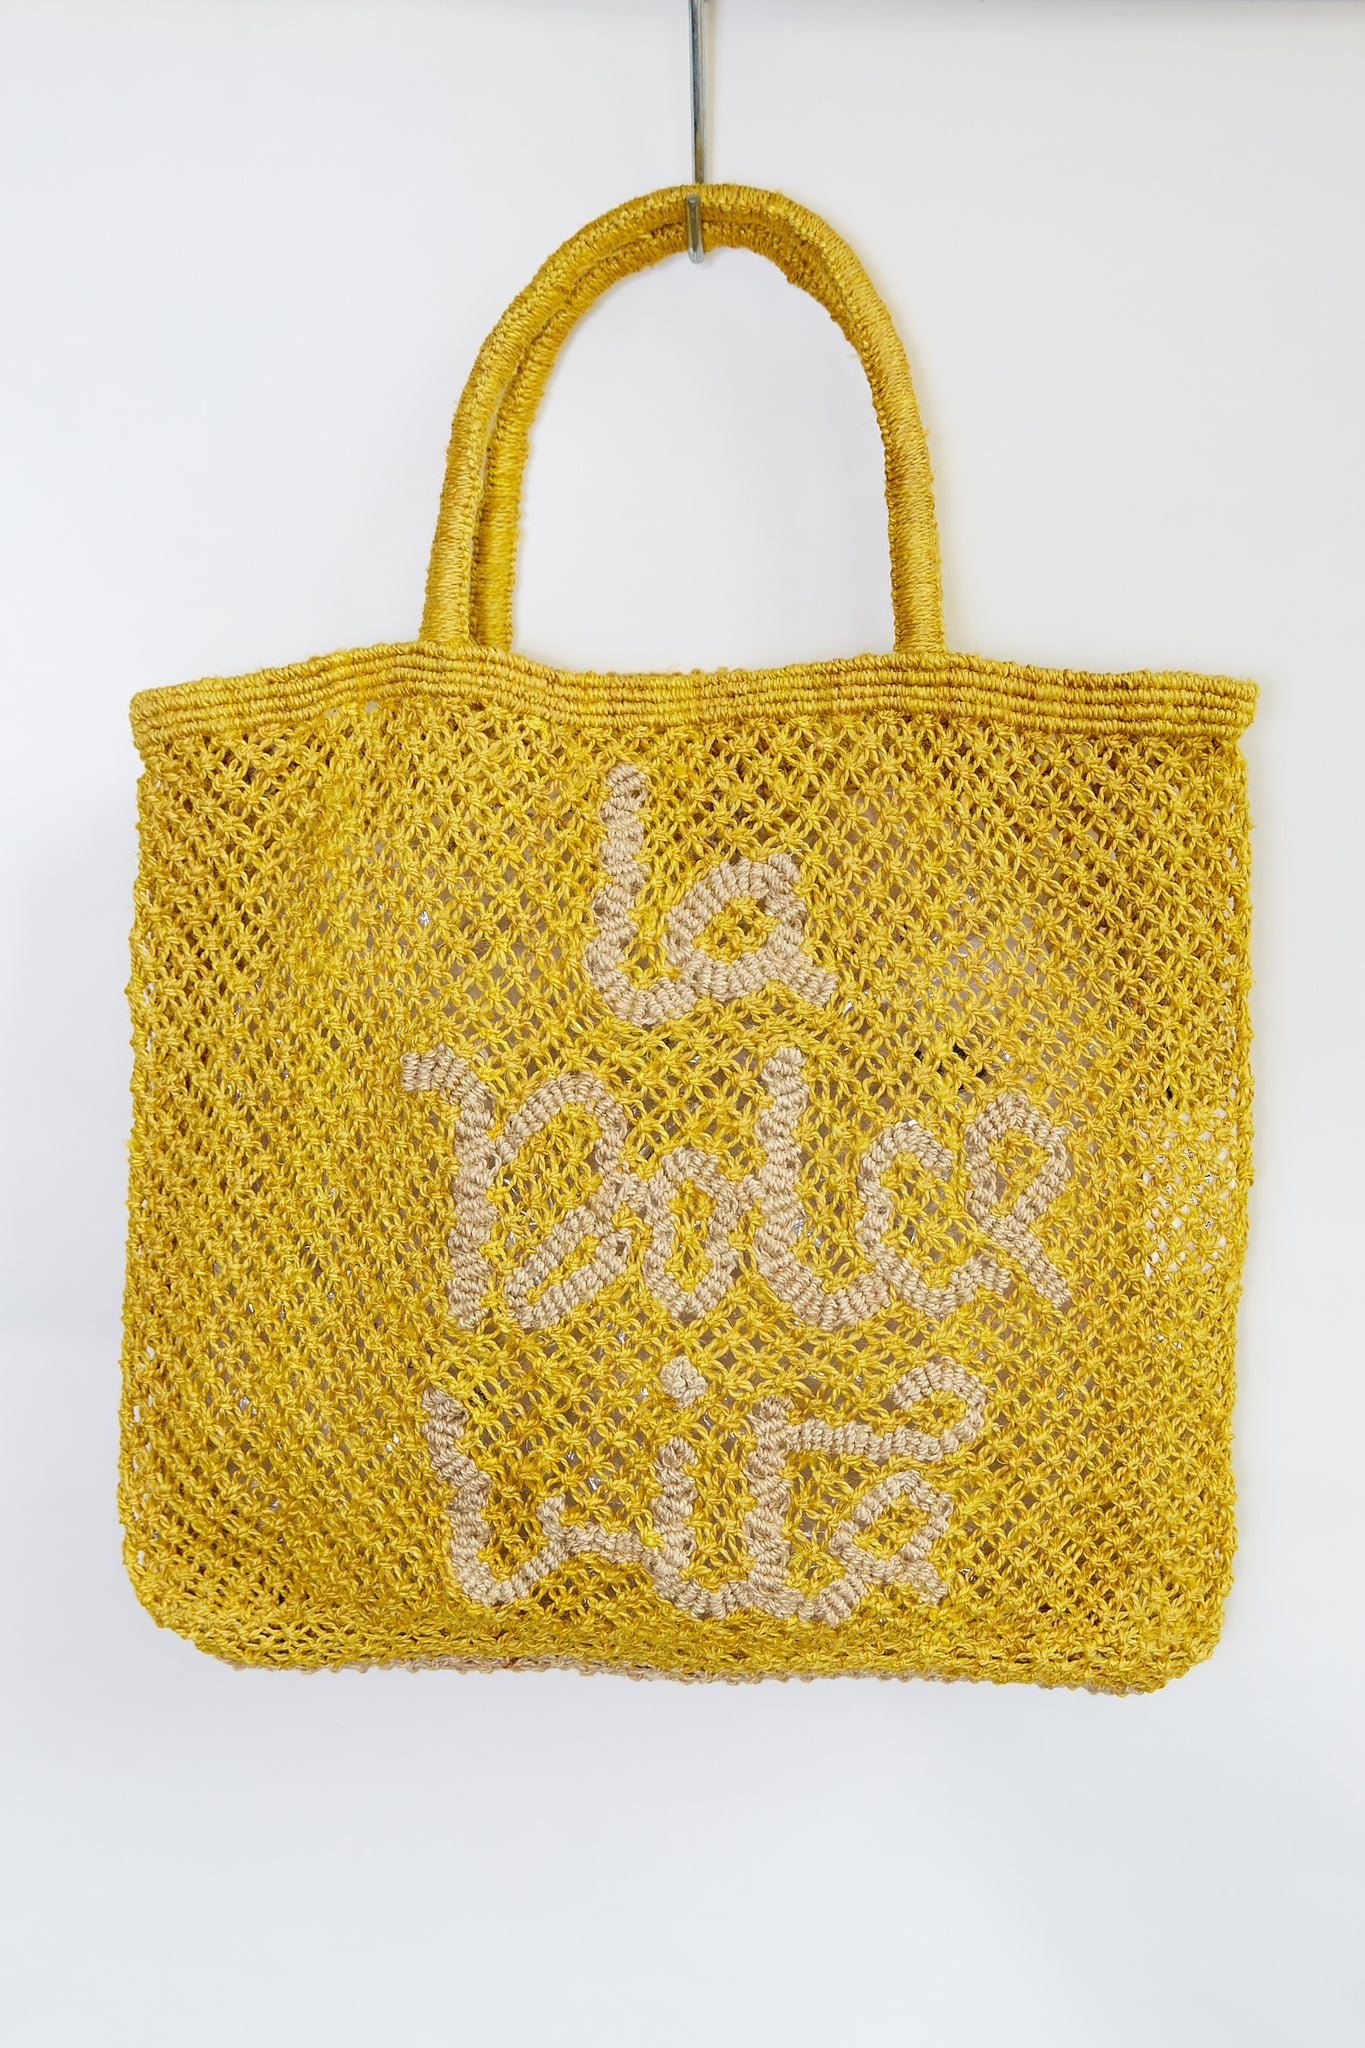 La Dolce Vita- Yellow with Natural